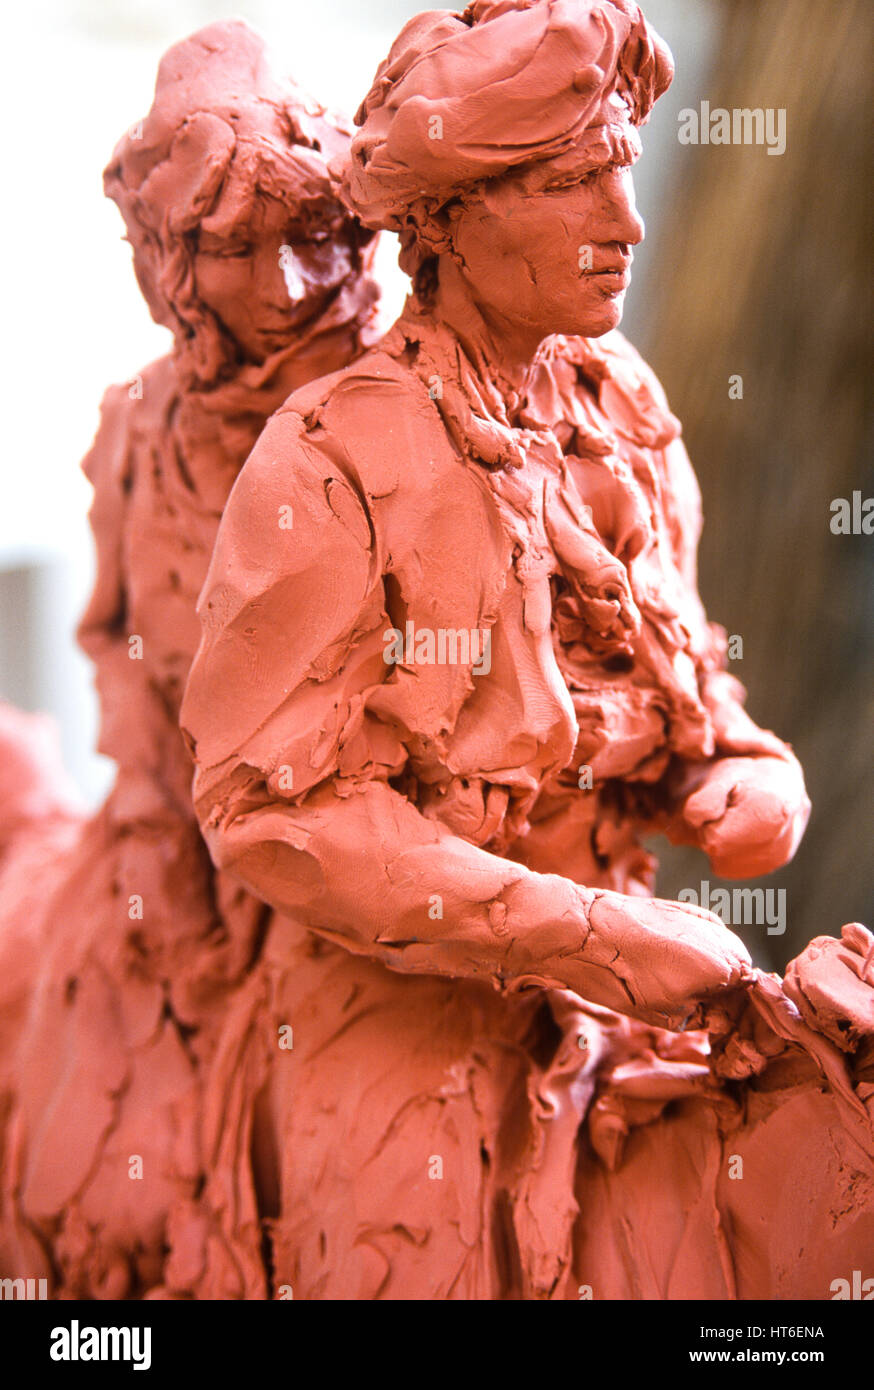 Clay sculpture of a man and woman. - Stock Image